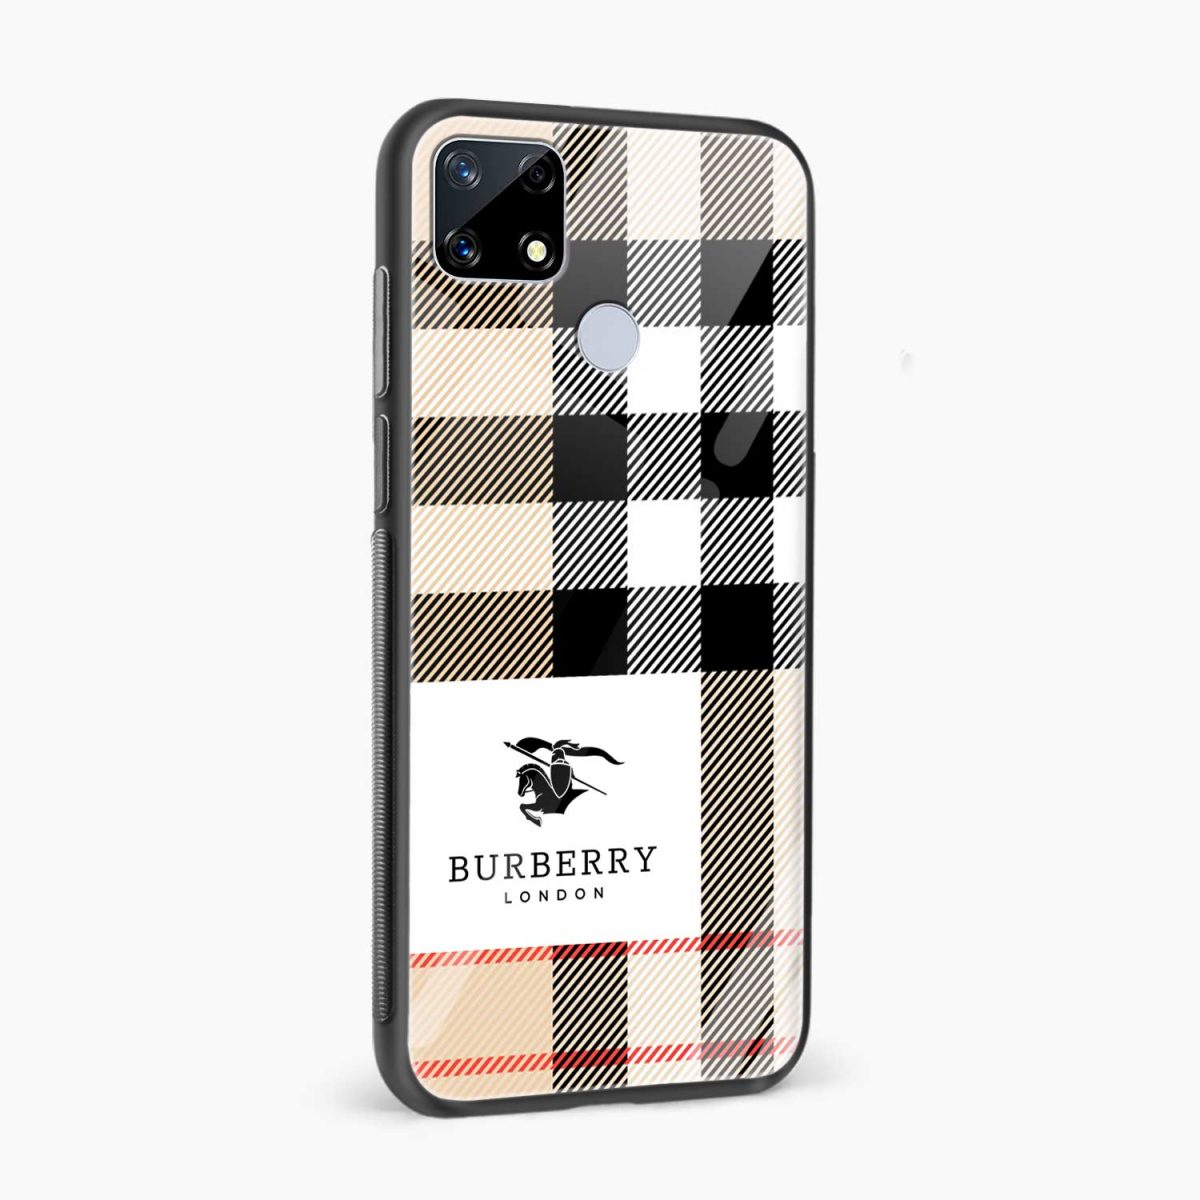 burberry cross lines pattern side view realme narzo 20 back cover